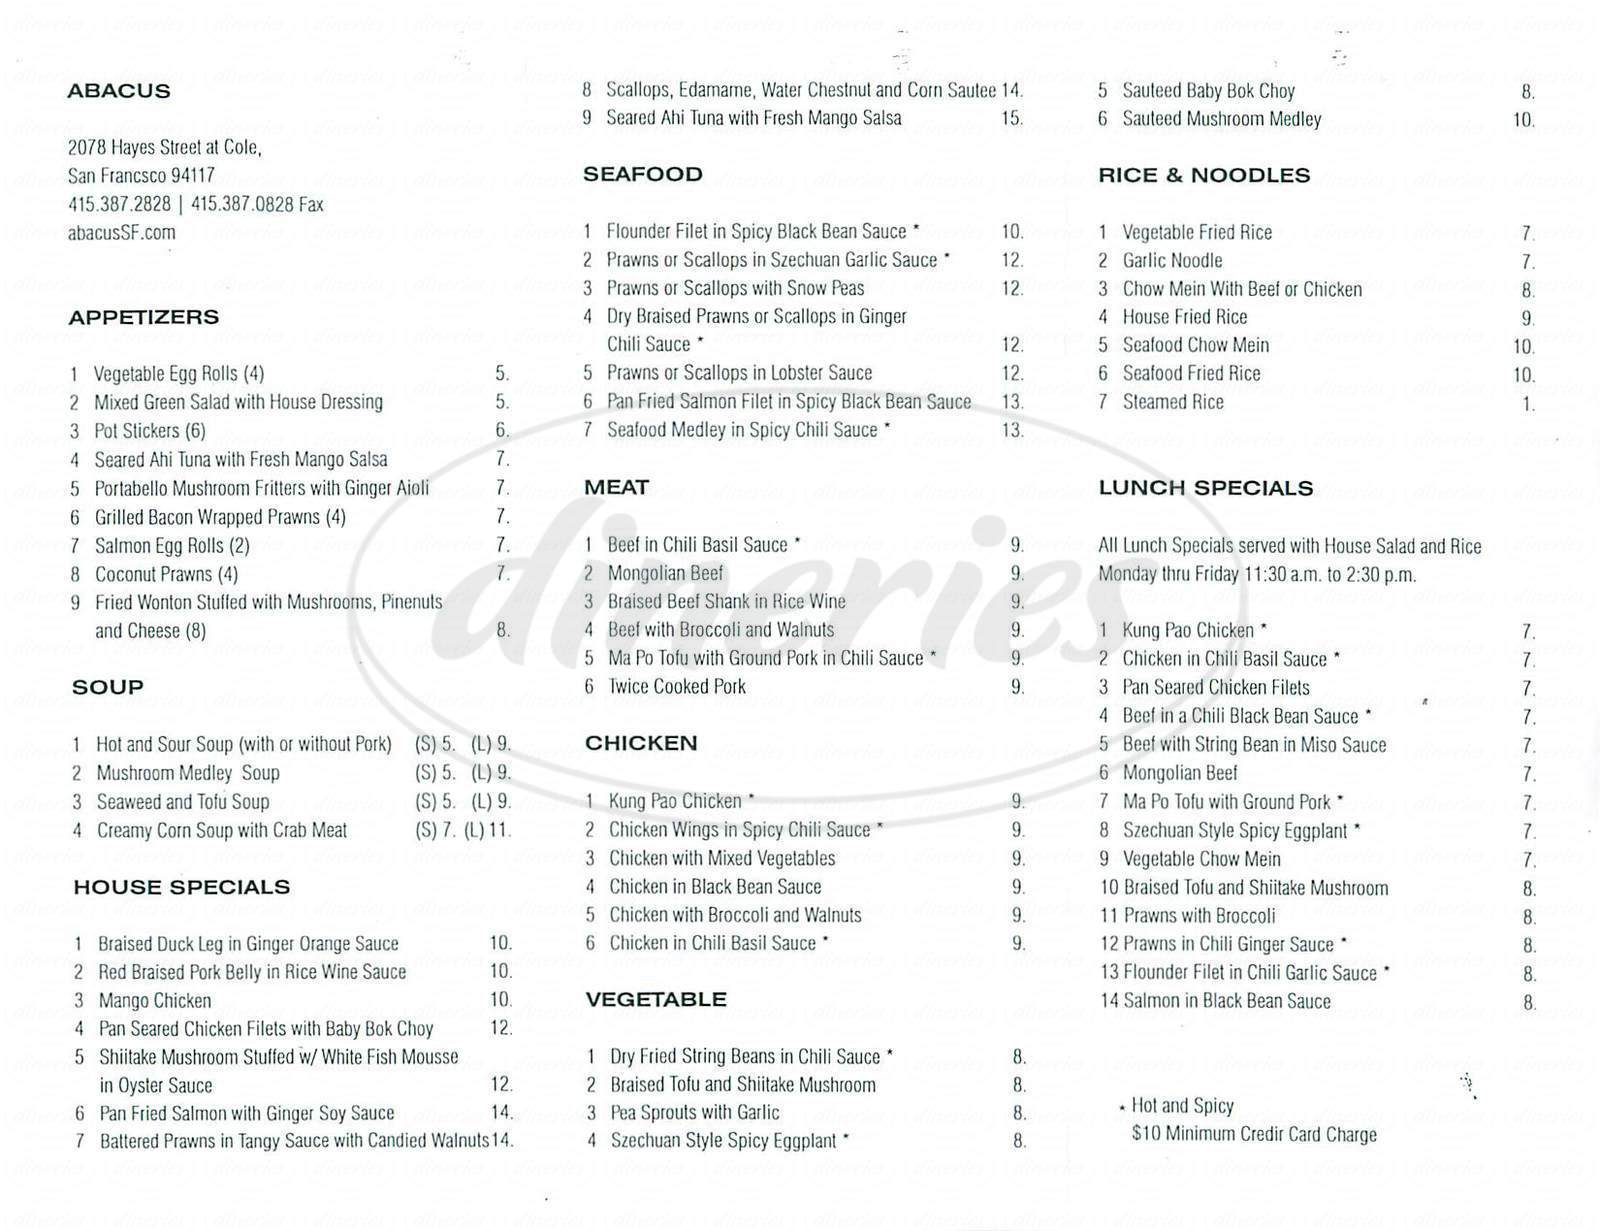 menu for Abacus